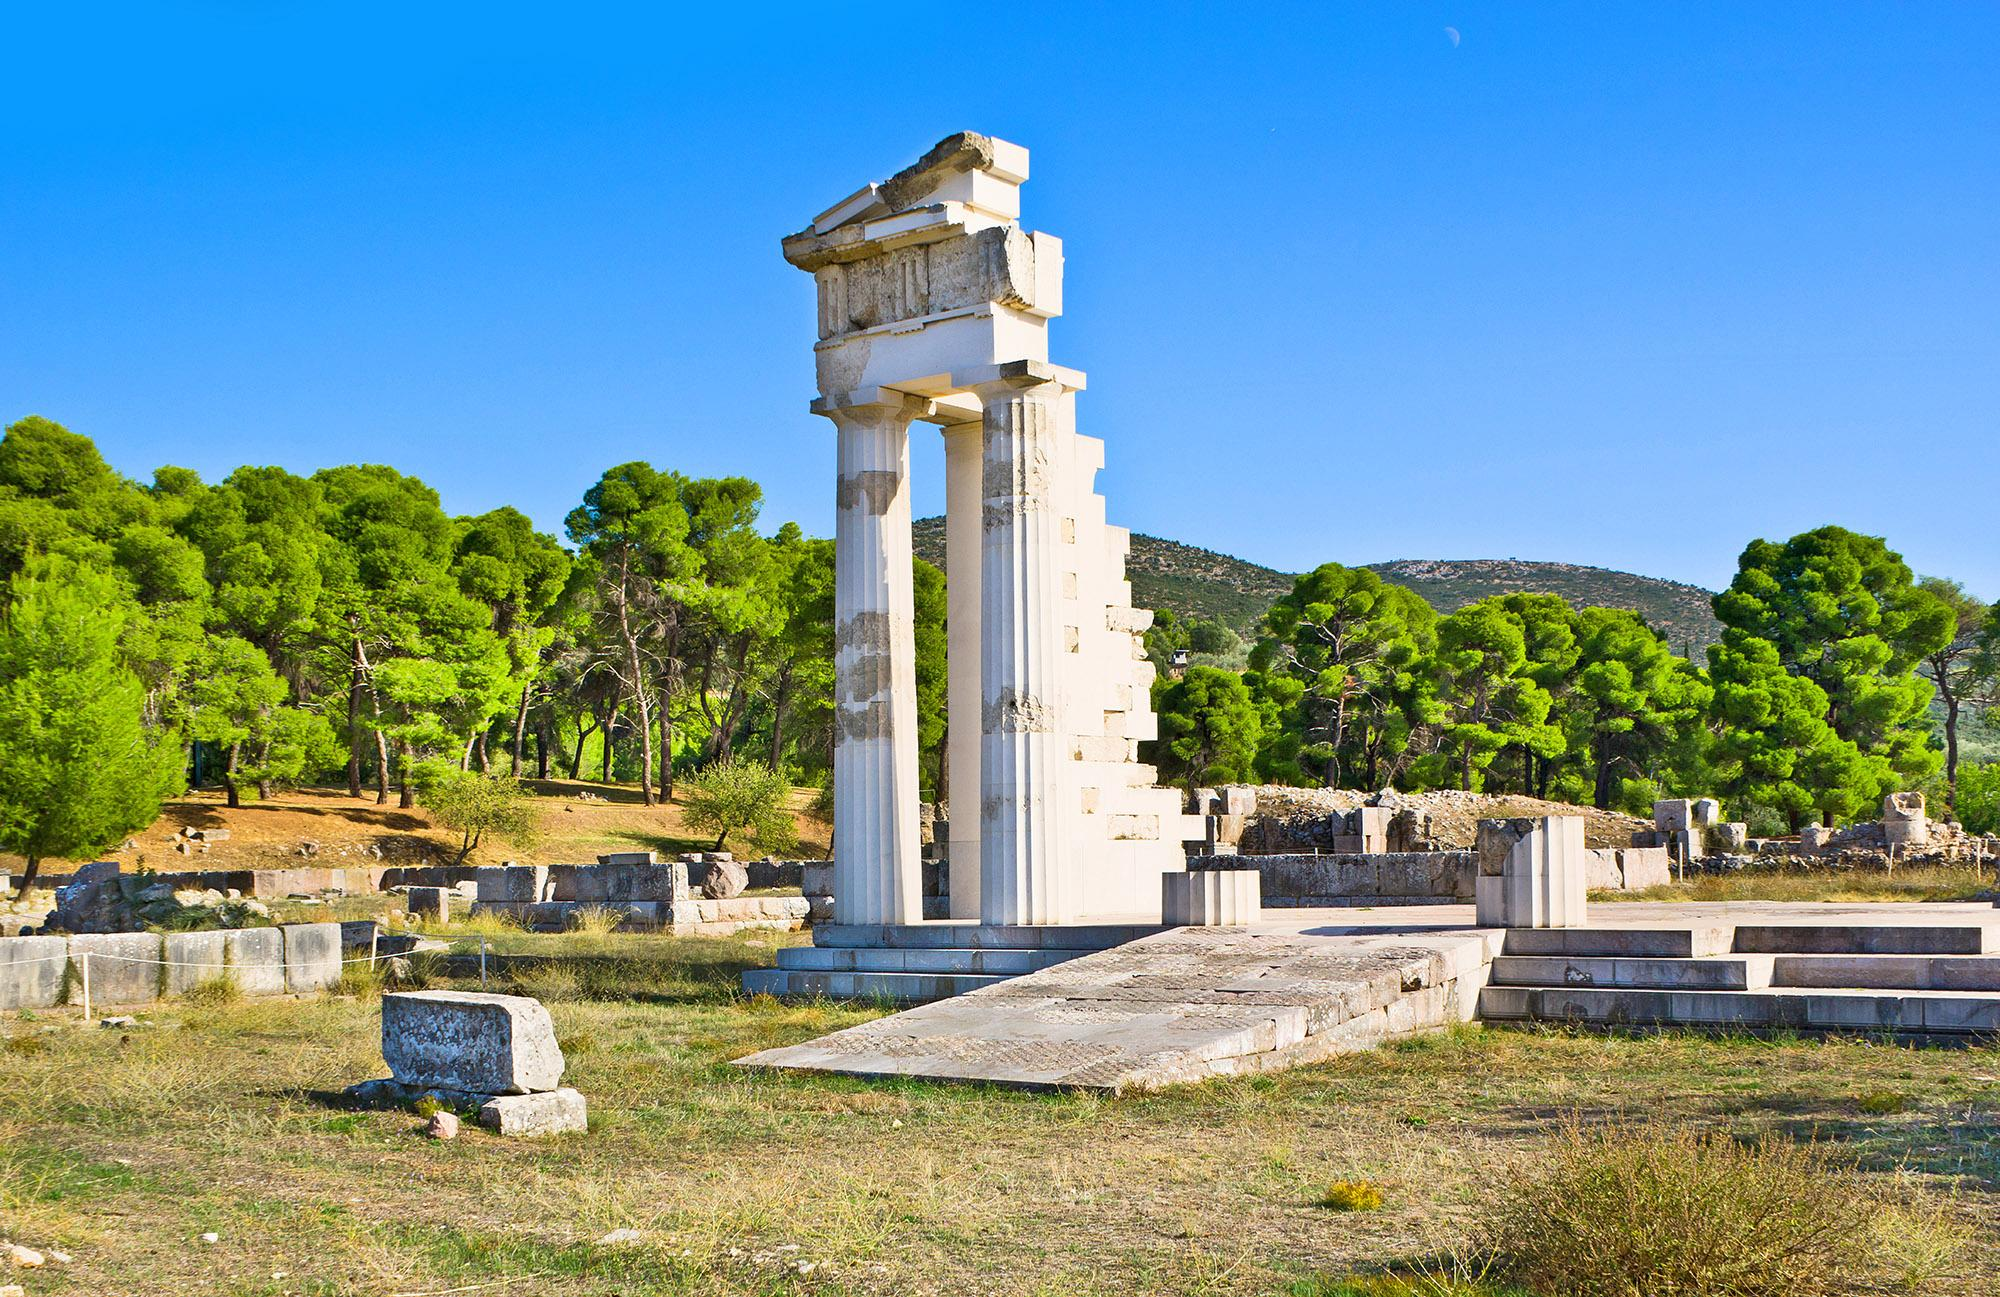 The archaeological site of the Sanctuary of Asclepius, with the ruins of Asclepius Temple, provides deep insight into the origins of the healing arts in the Western World. – © eFesenko / Shutterstock